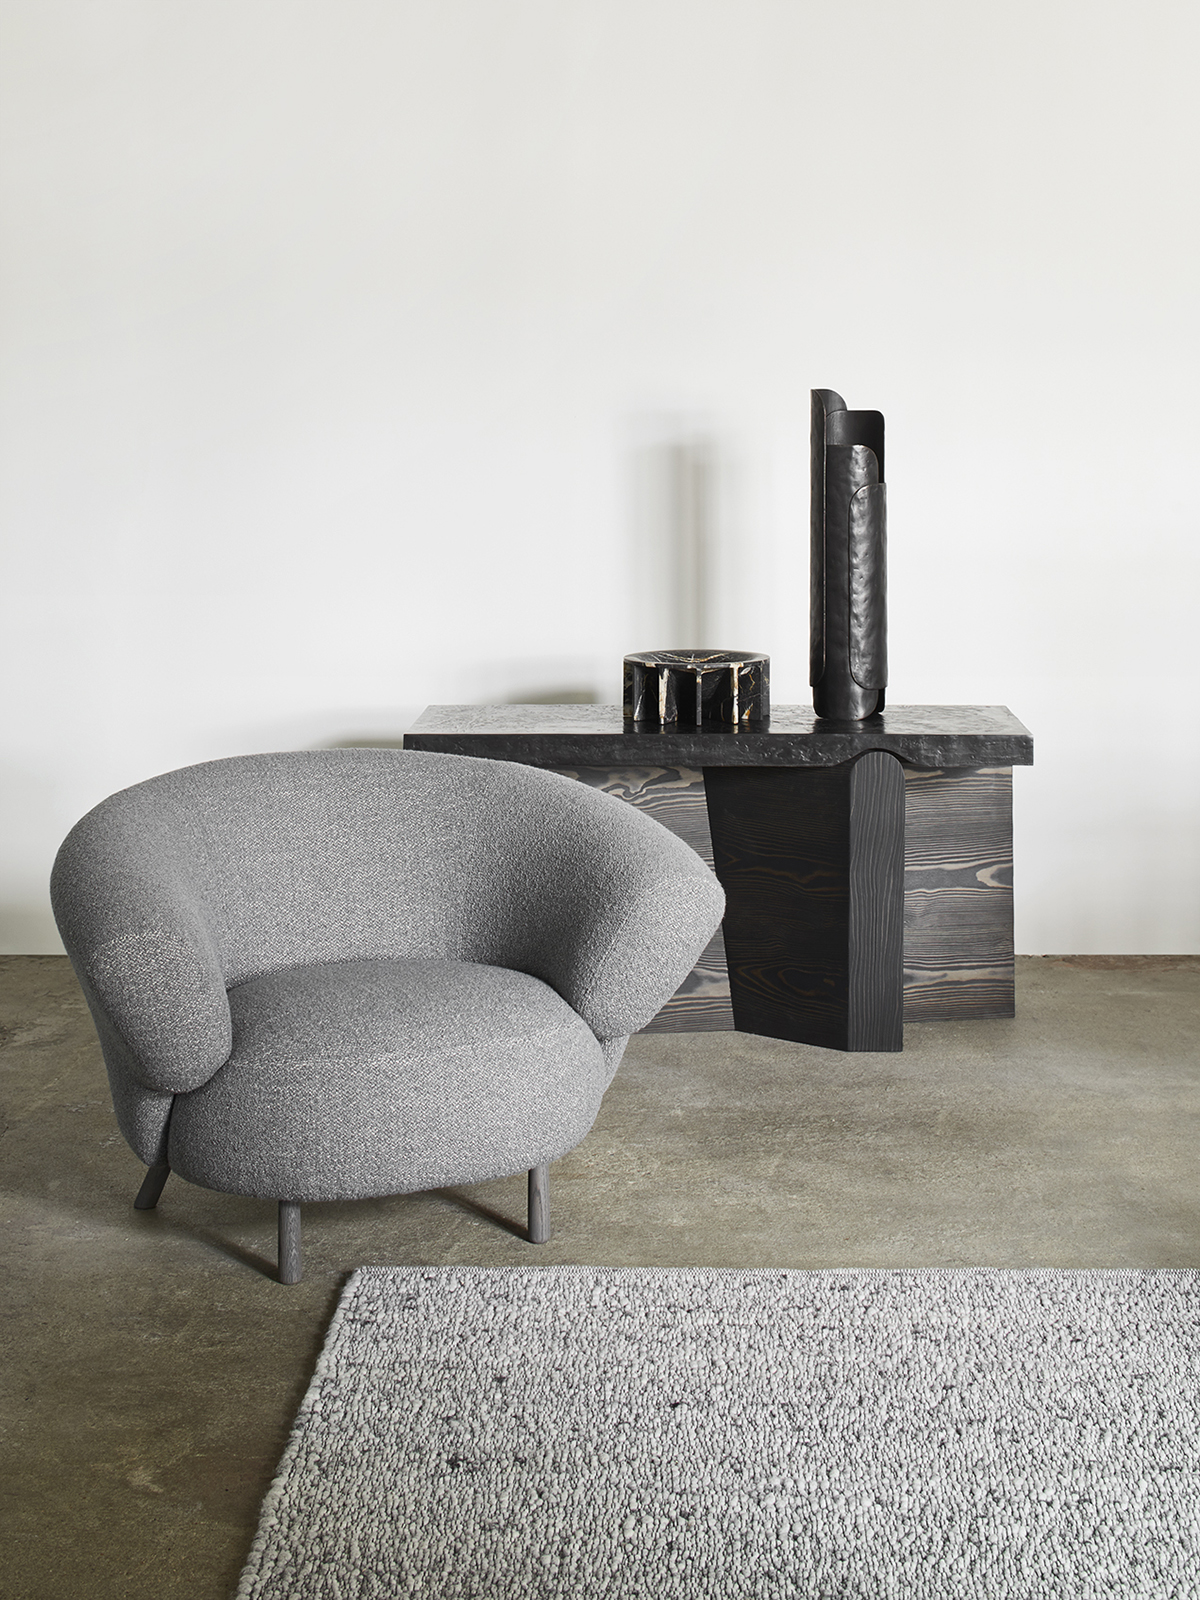 Declourt Collection - ANA chair - TEO console